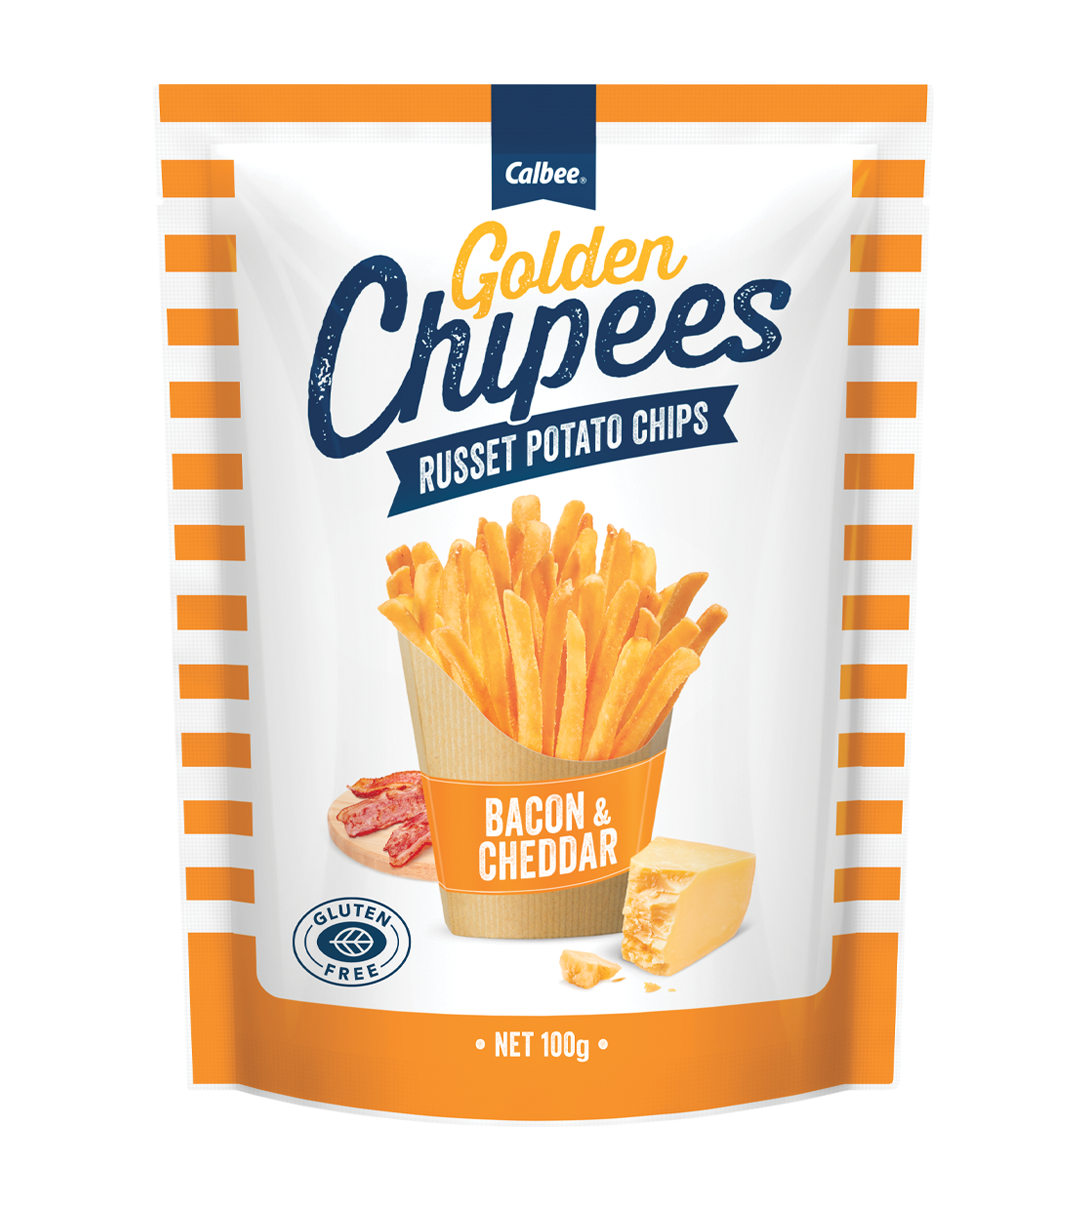 Calbee Australia - Golden Chipees - Russet Potato Chips - Cheese & Bacon